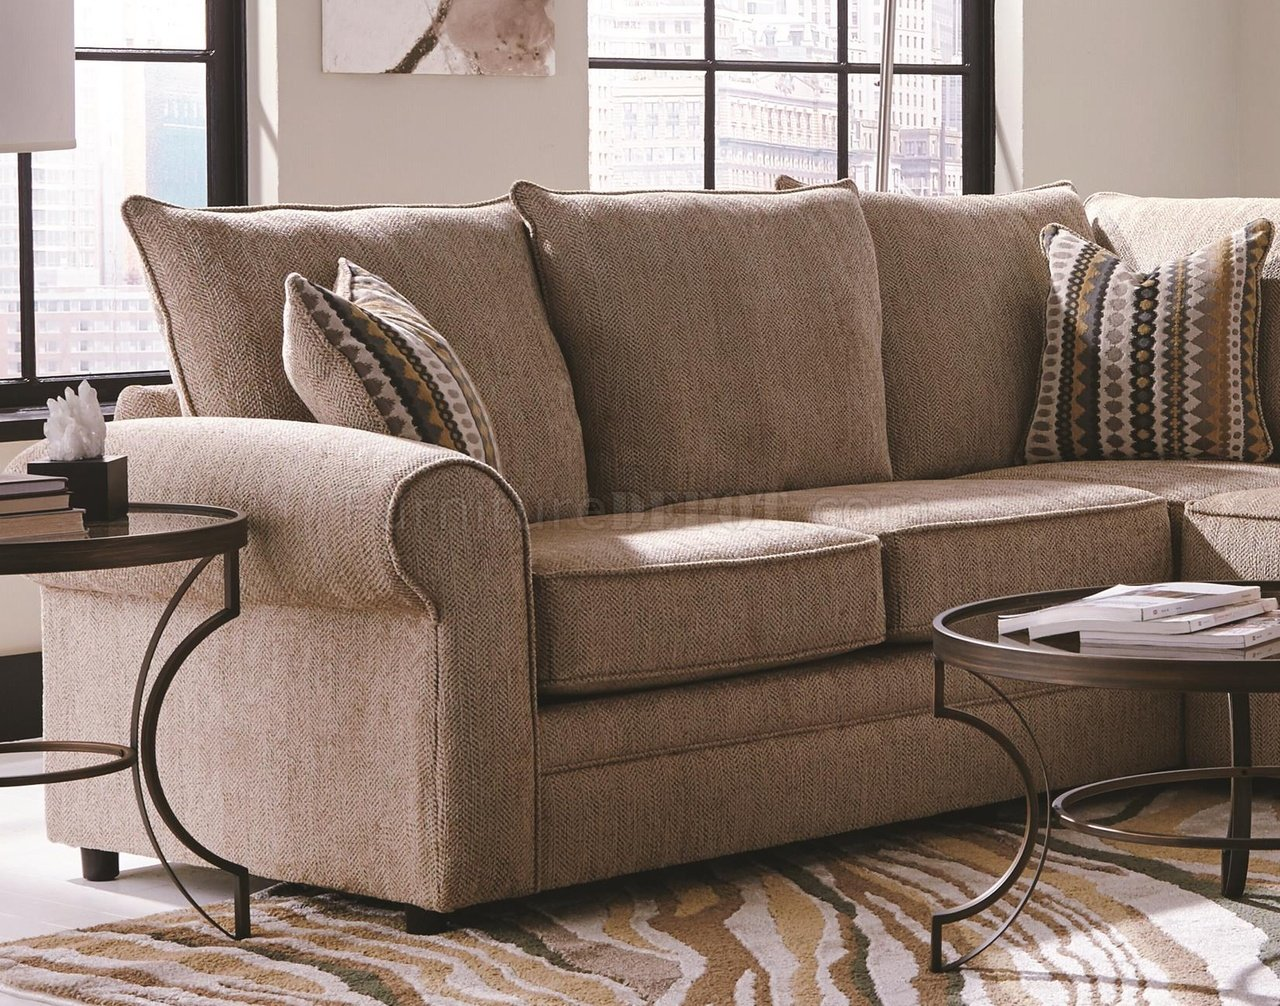 Fairhaven sectional sofa 501149 in cream fabric by coaster Cream fabric sofa